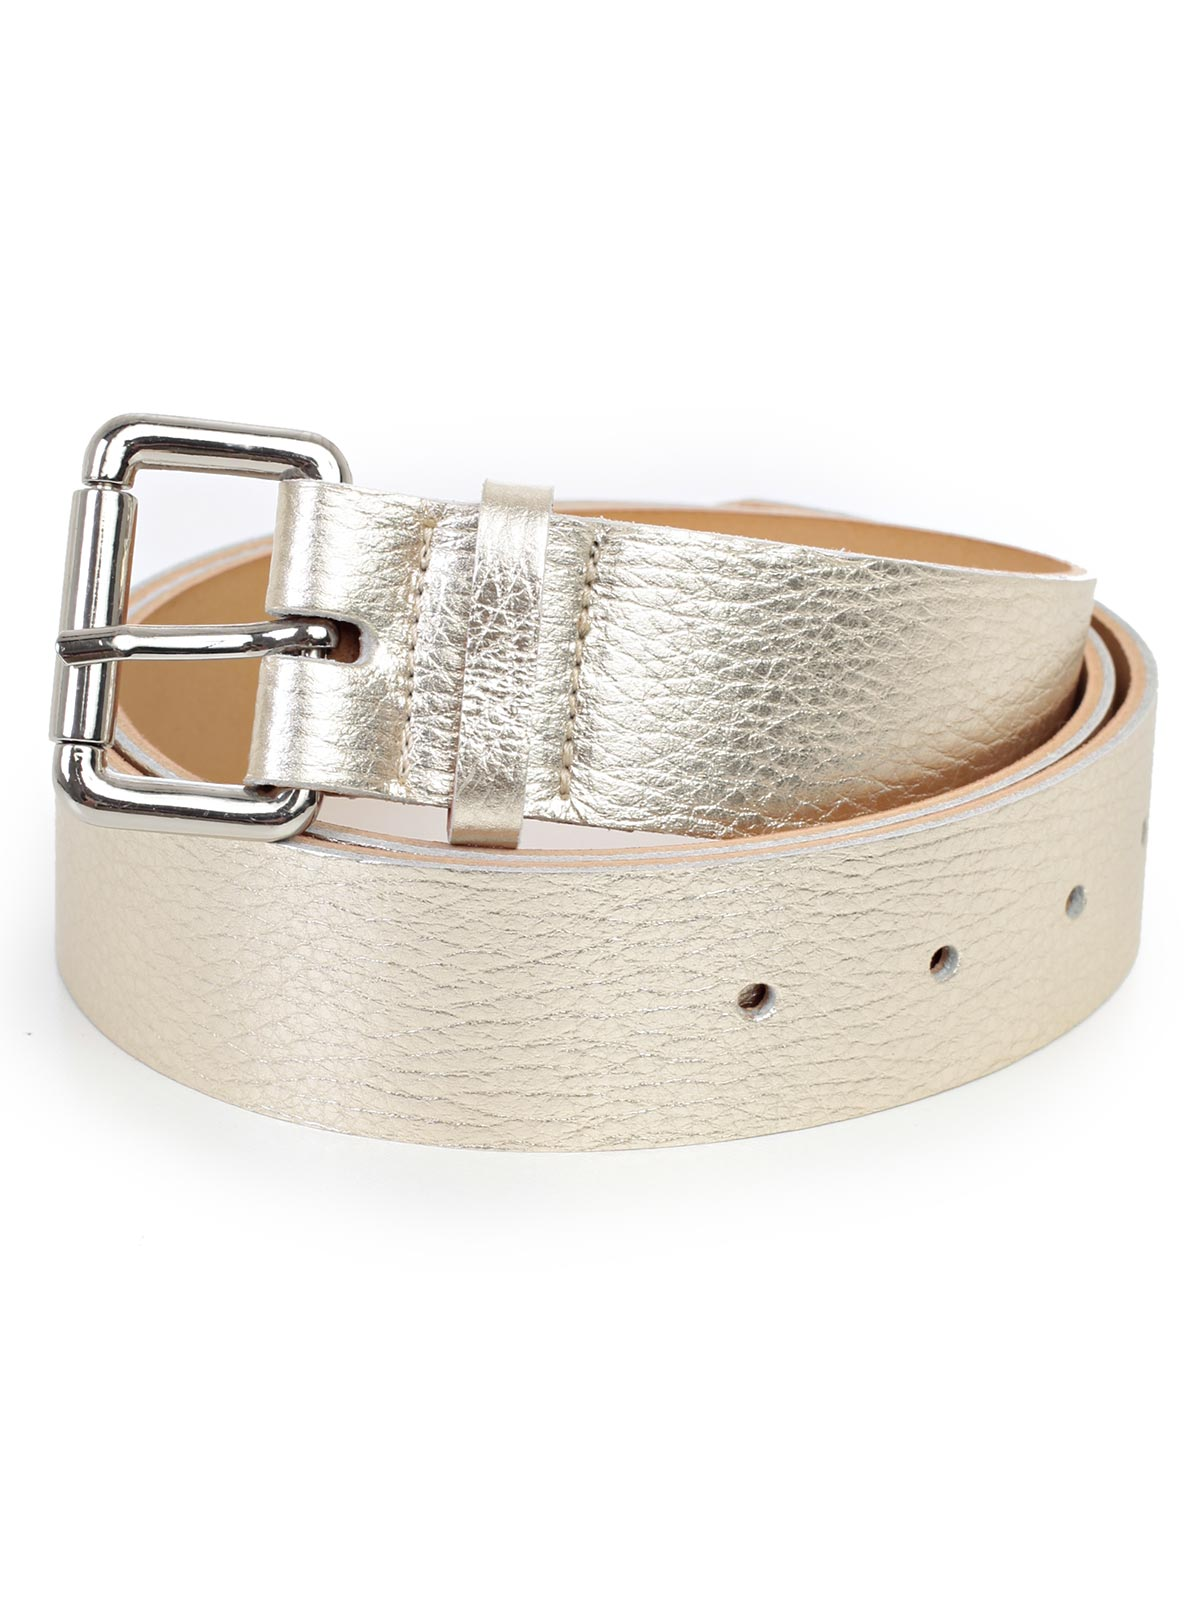 Picture of P.A.R.O.S.H. BELT